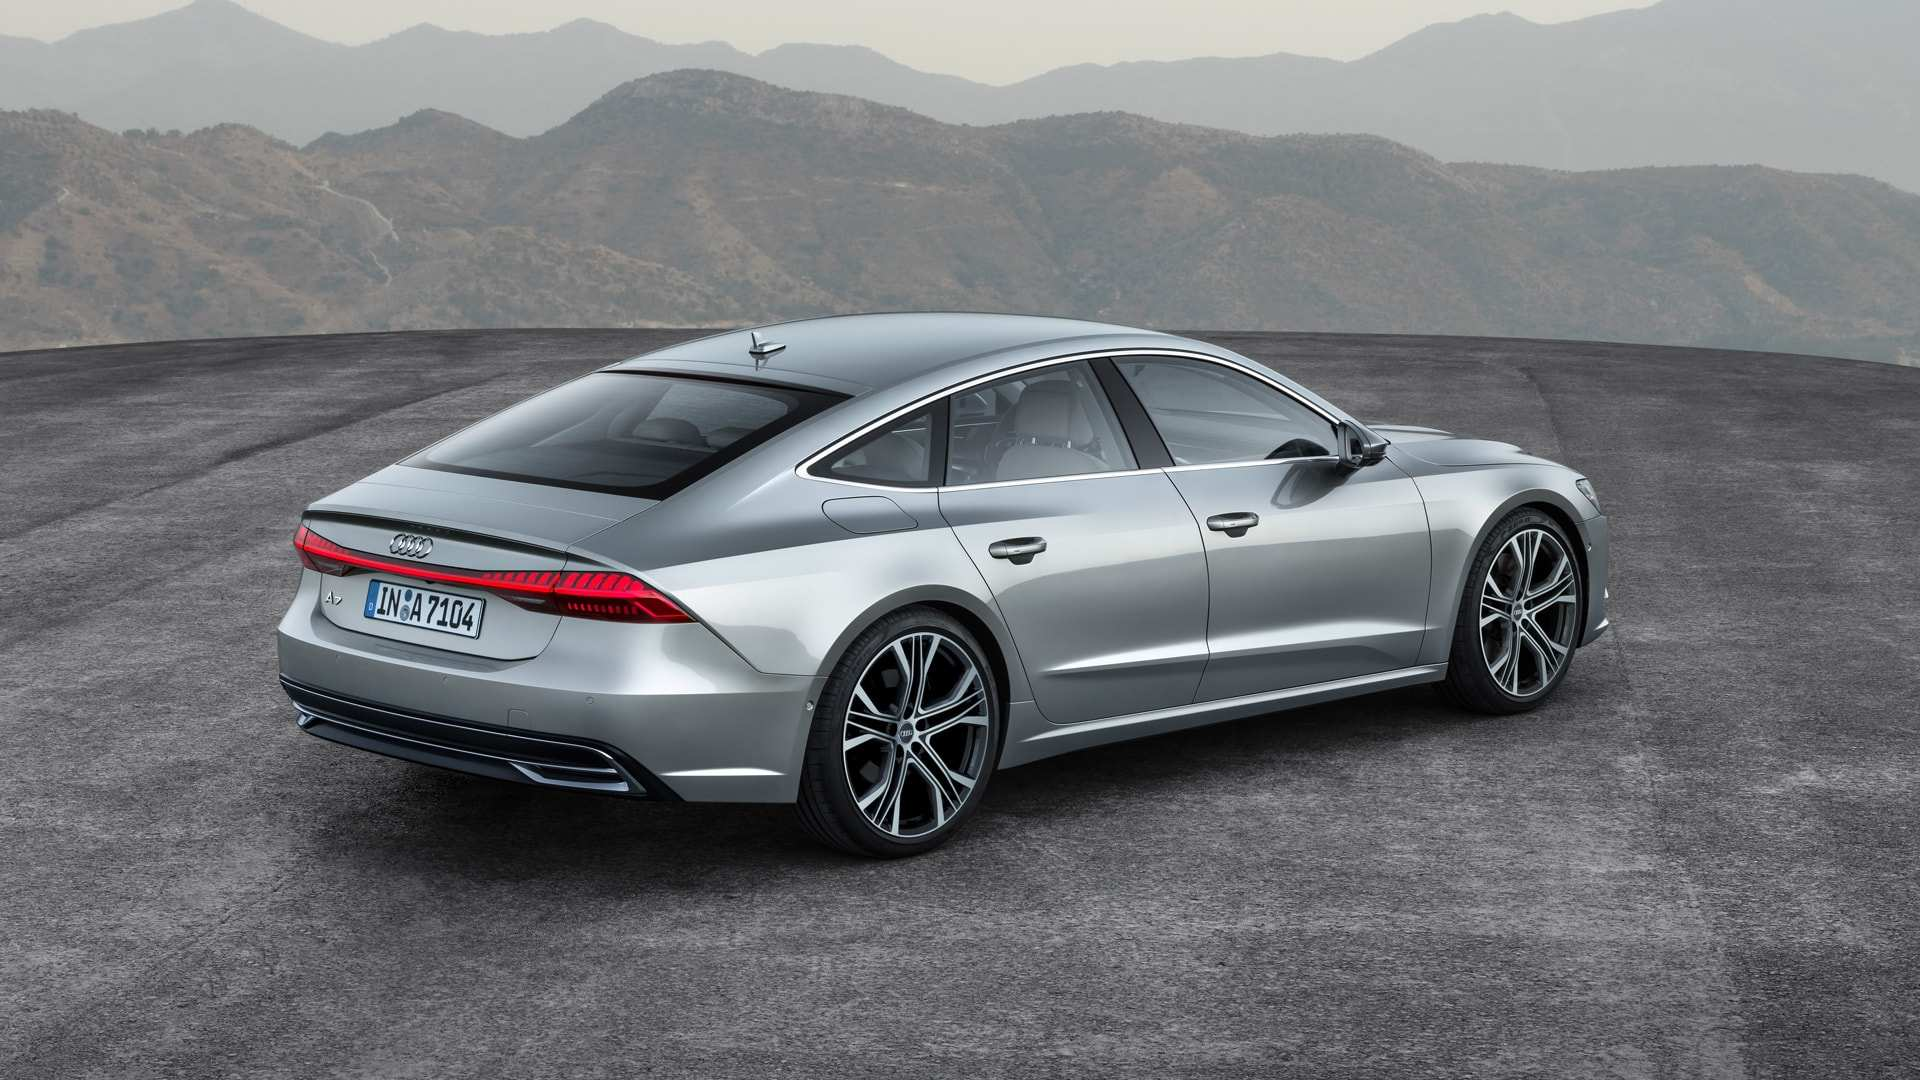 47 New 2019 Audi A7 Ratings with 2019 Audi A7